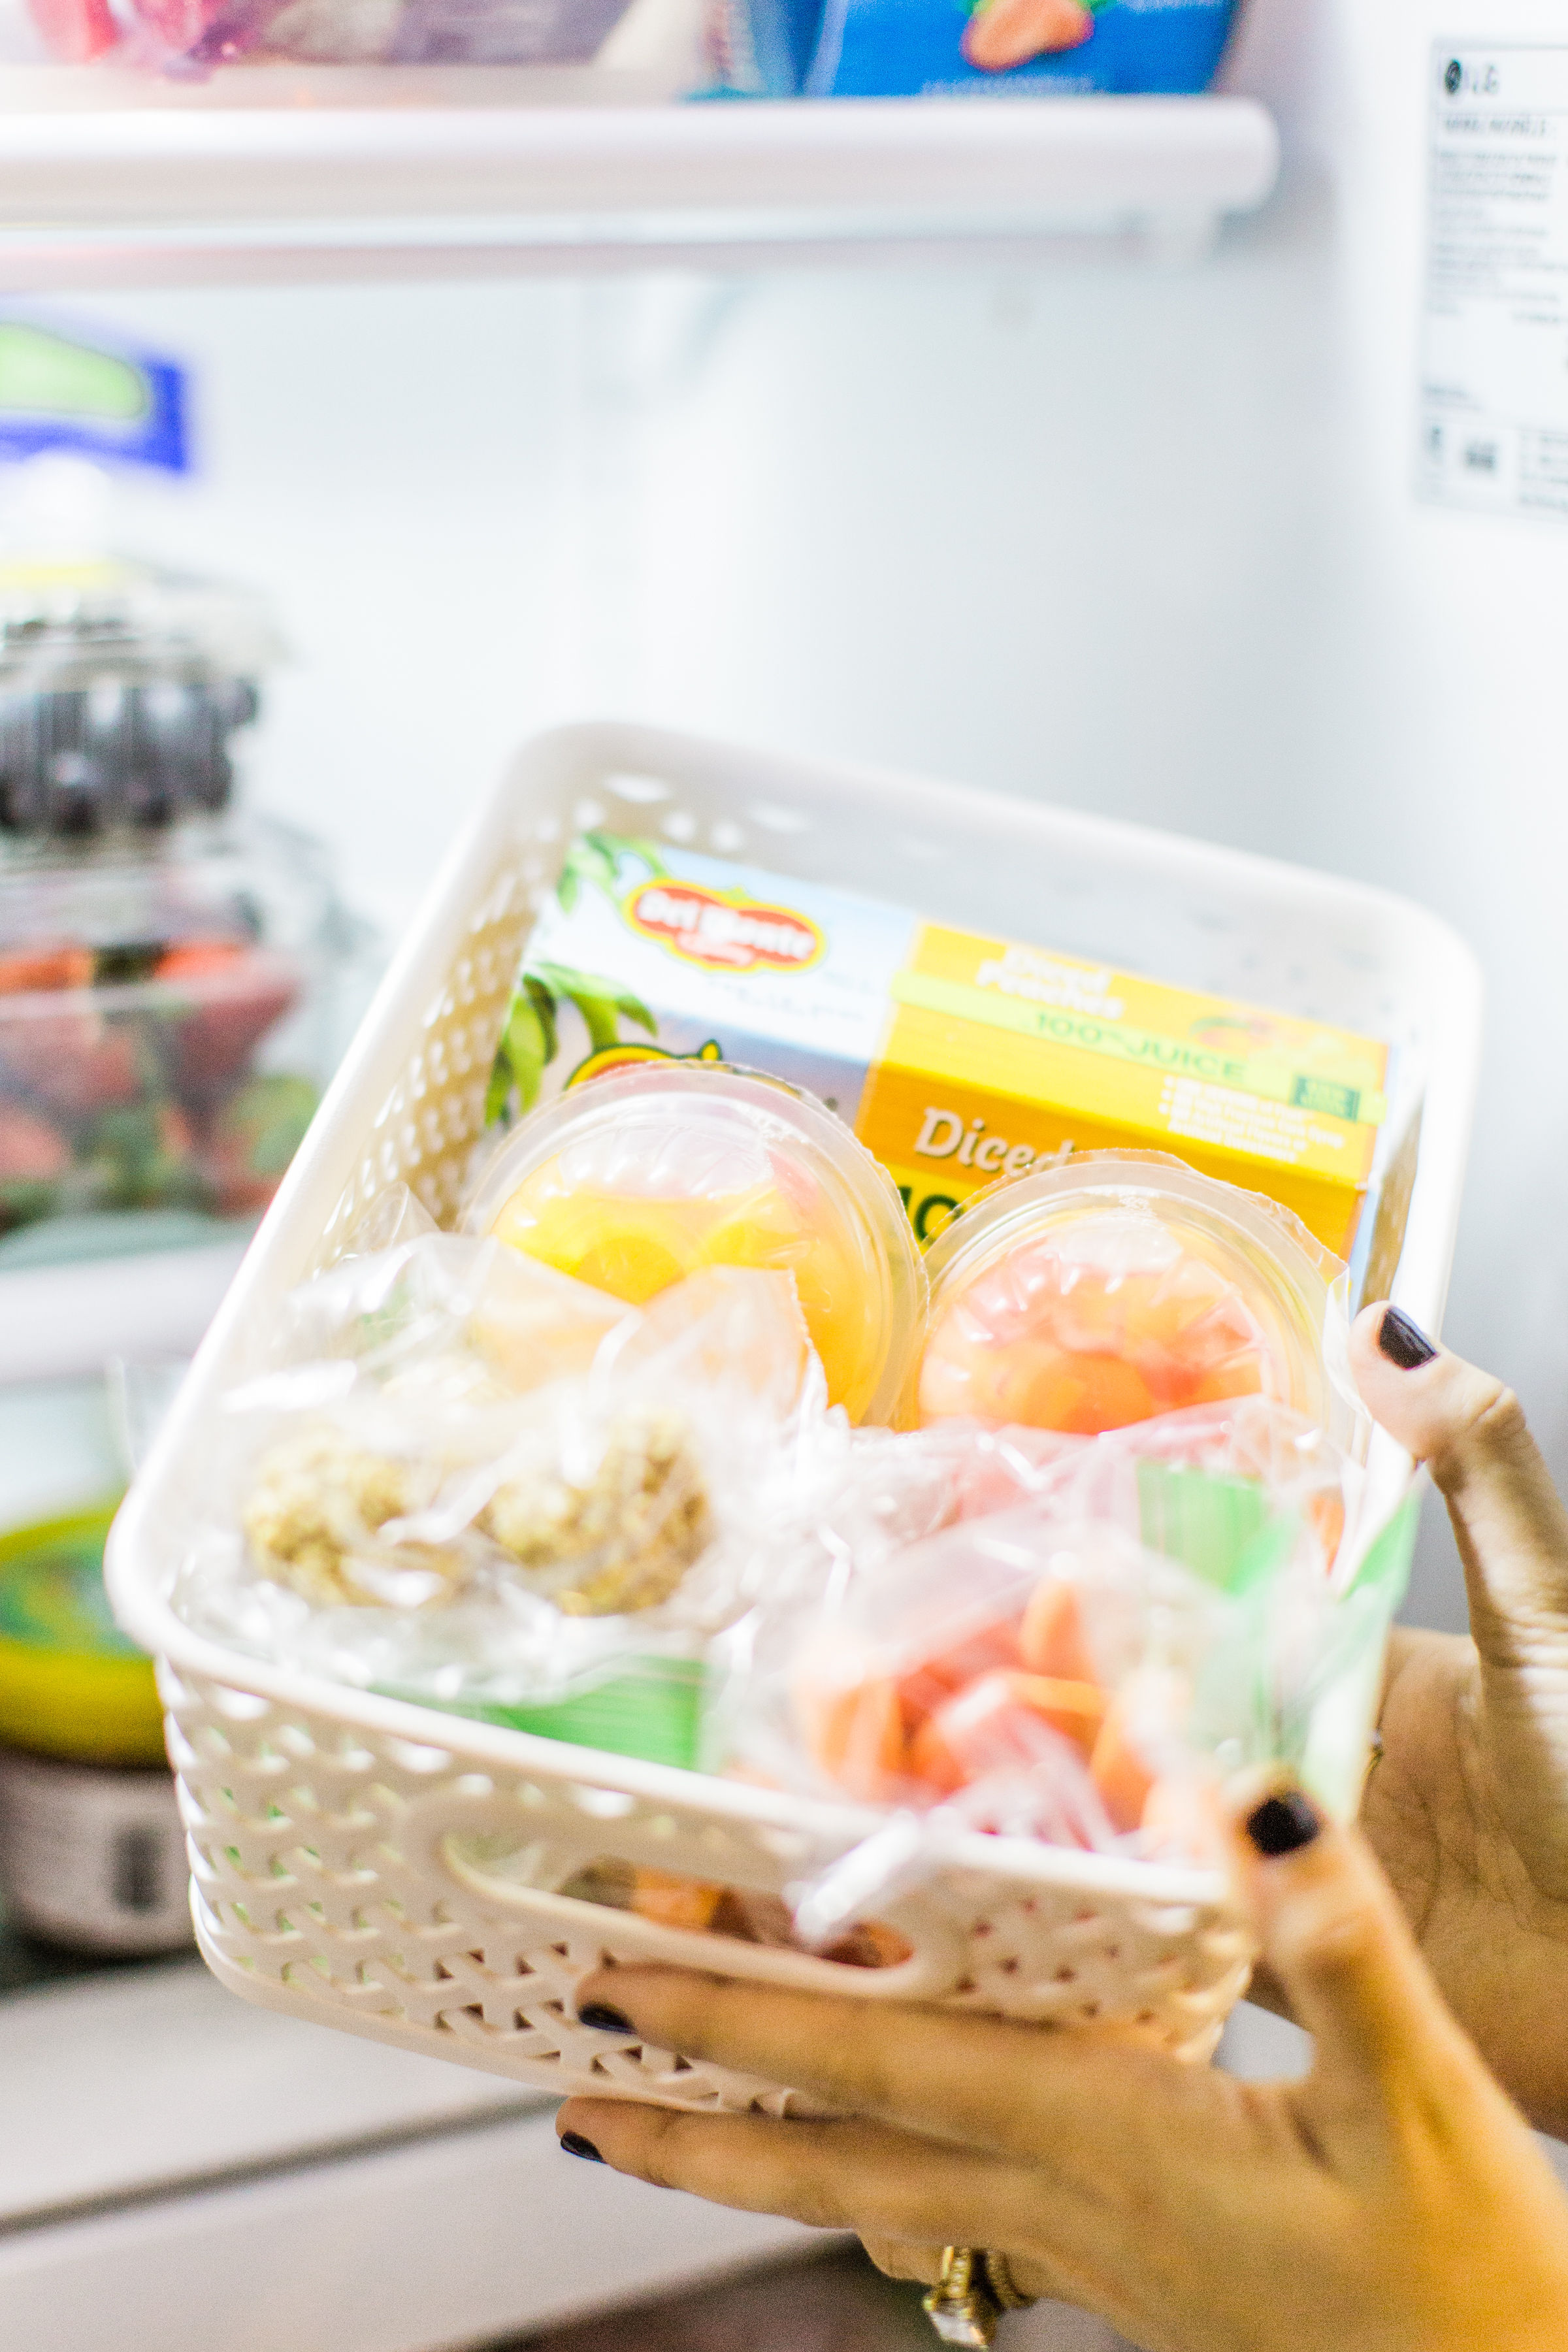 Looking to simplify snack-time for your family? Create these healthy snack bins, a.k.a., a healthy snack station, stocked with awesome, easy, portable snacks kids and grown-ups alike will love! #snacks #snacktime #healthysnacks #snacksforkids   glitterinc.com   @glitterinc